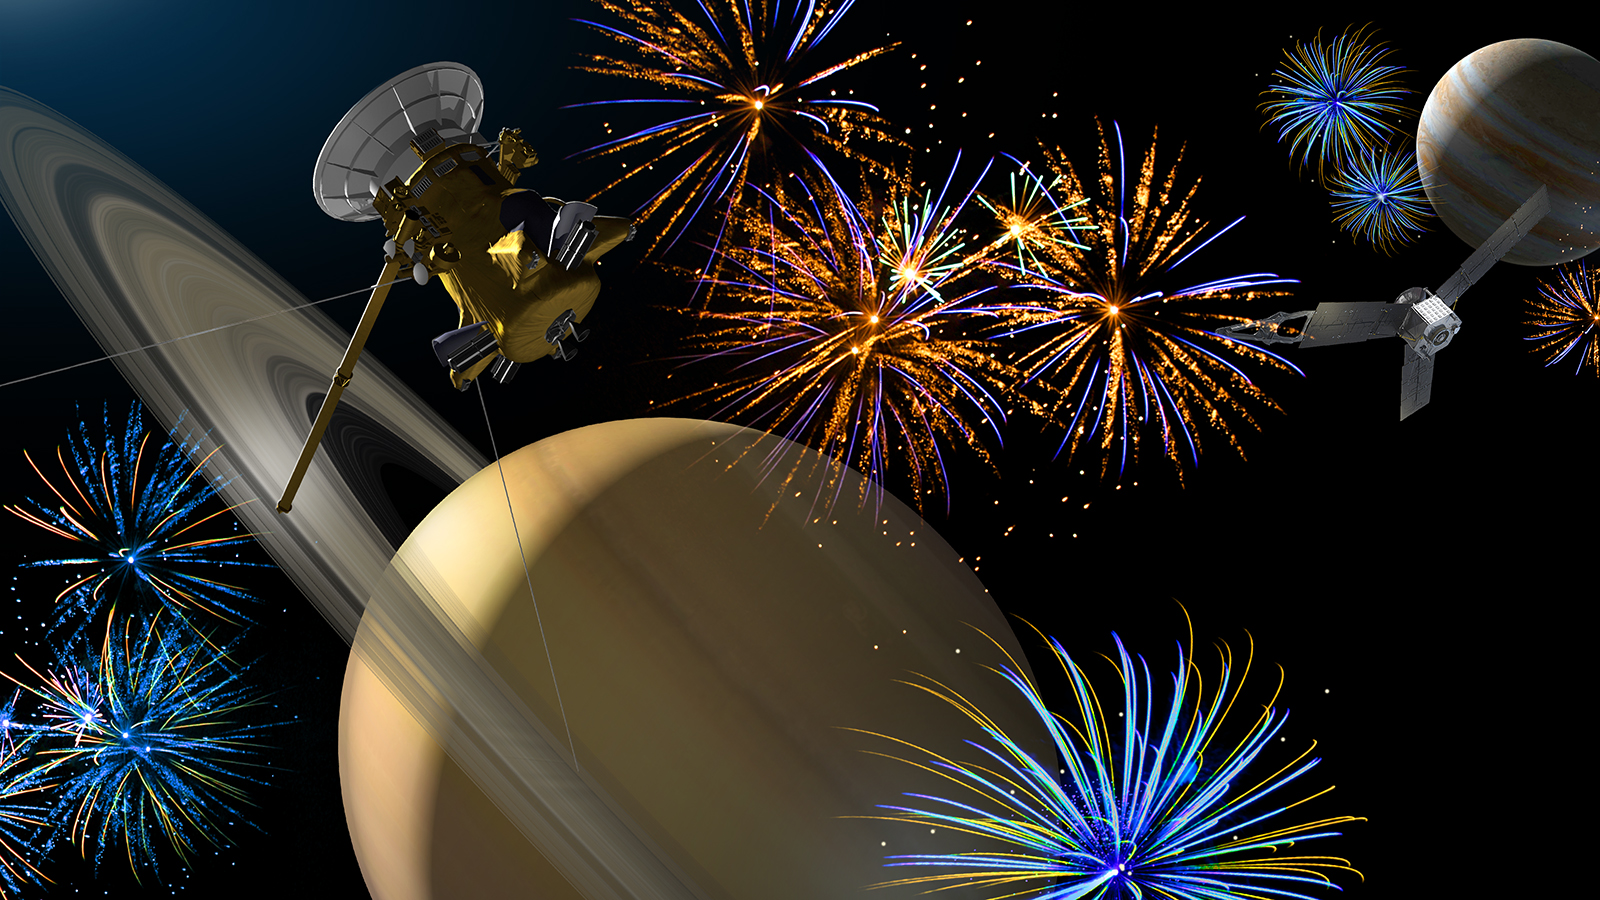 Saturn illustrated with fourth of July themes.